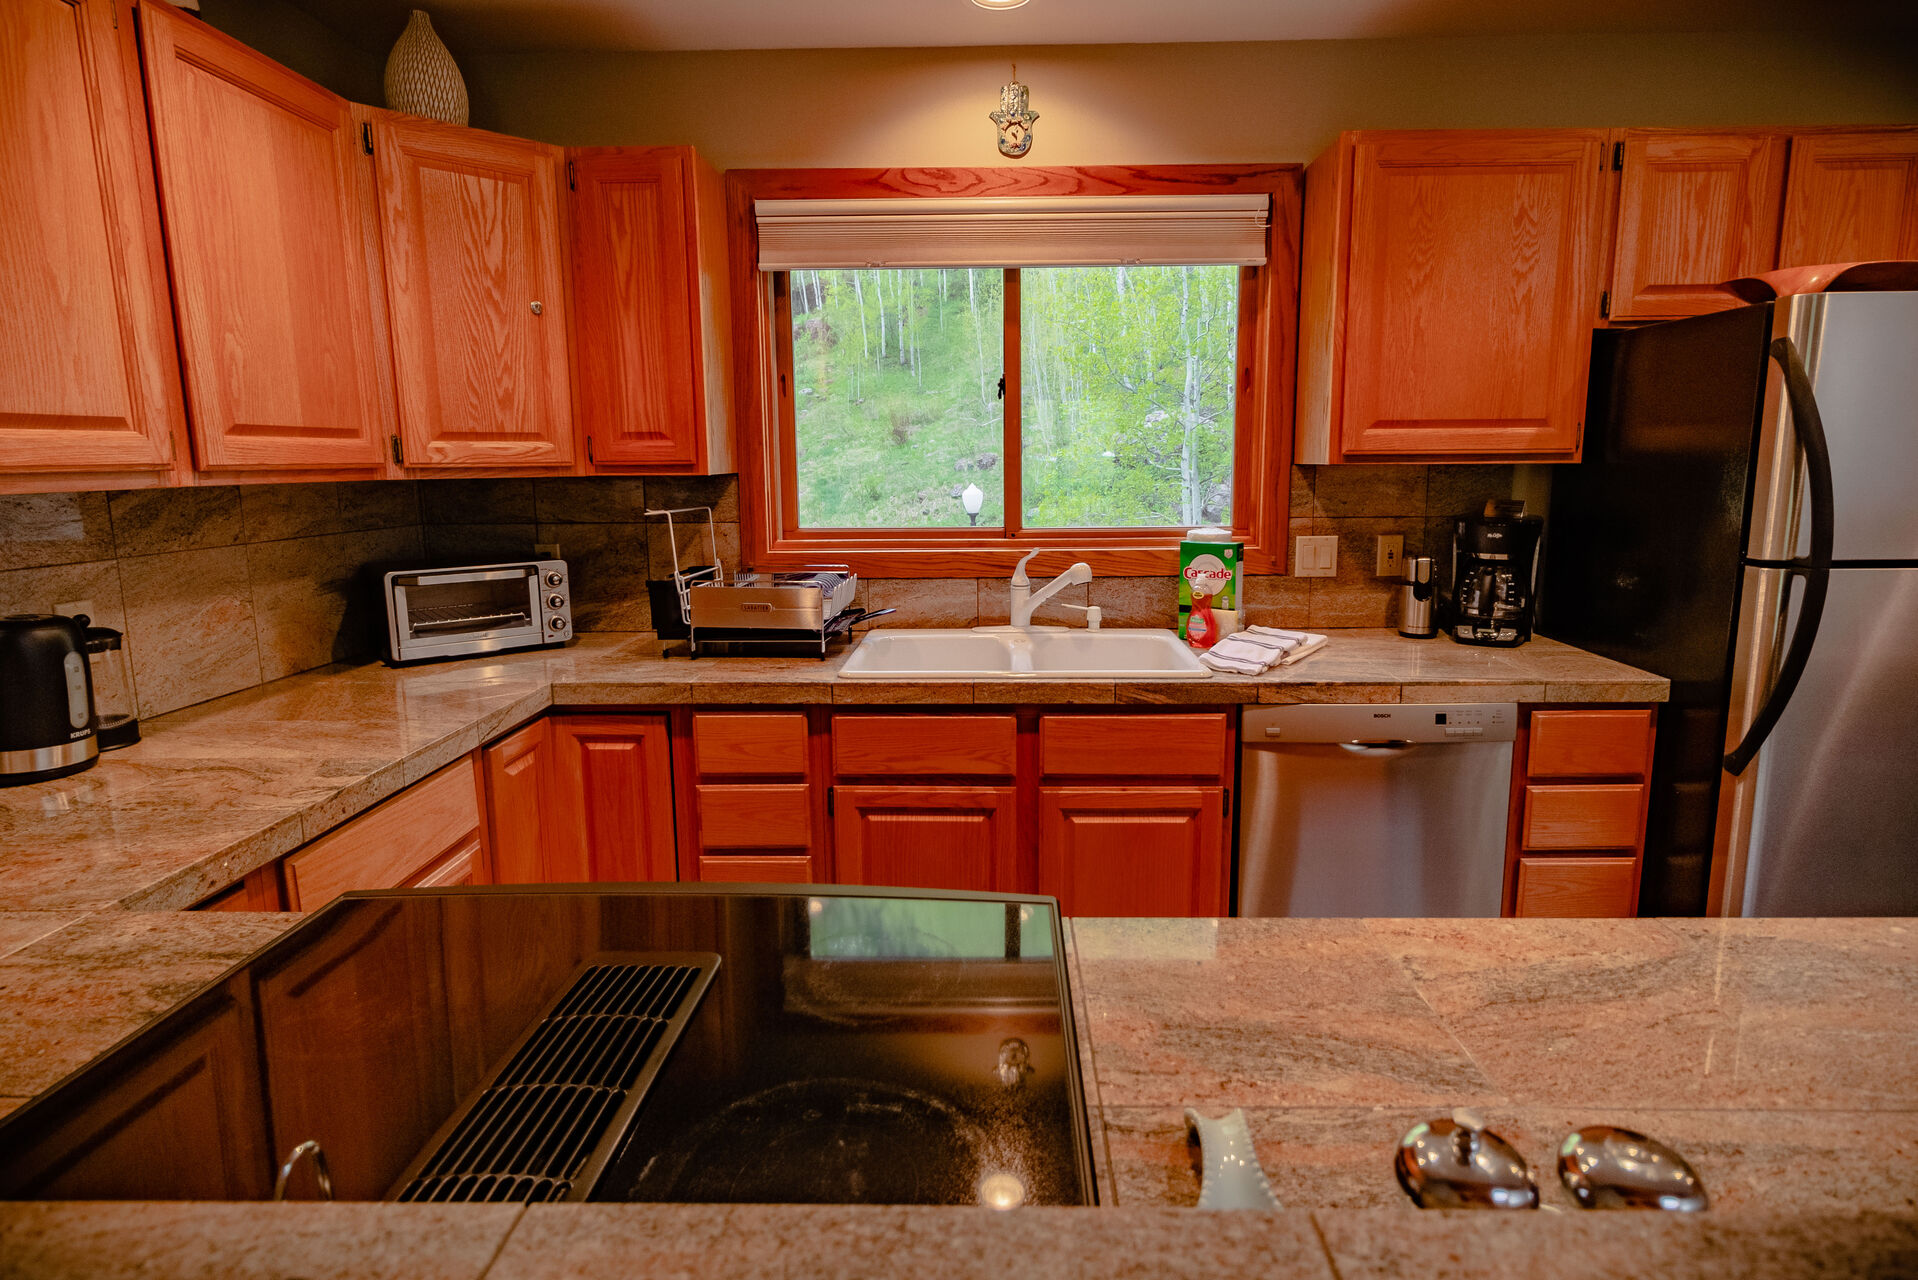 Full Kitchen with Wrap-Around Counter Tops and Stainless Steel Appliances at Colorado Vacation Cabin